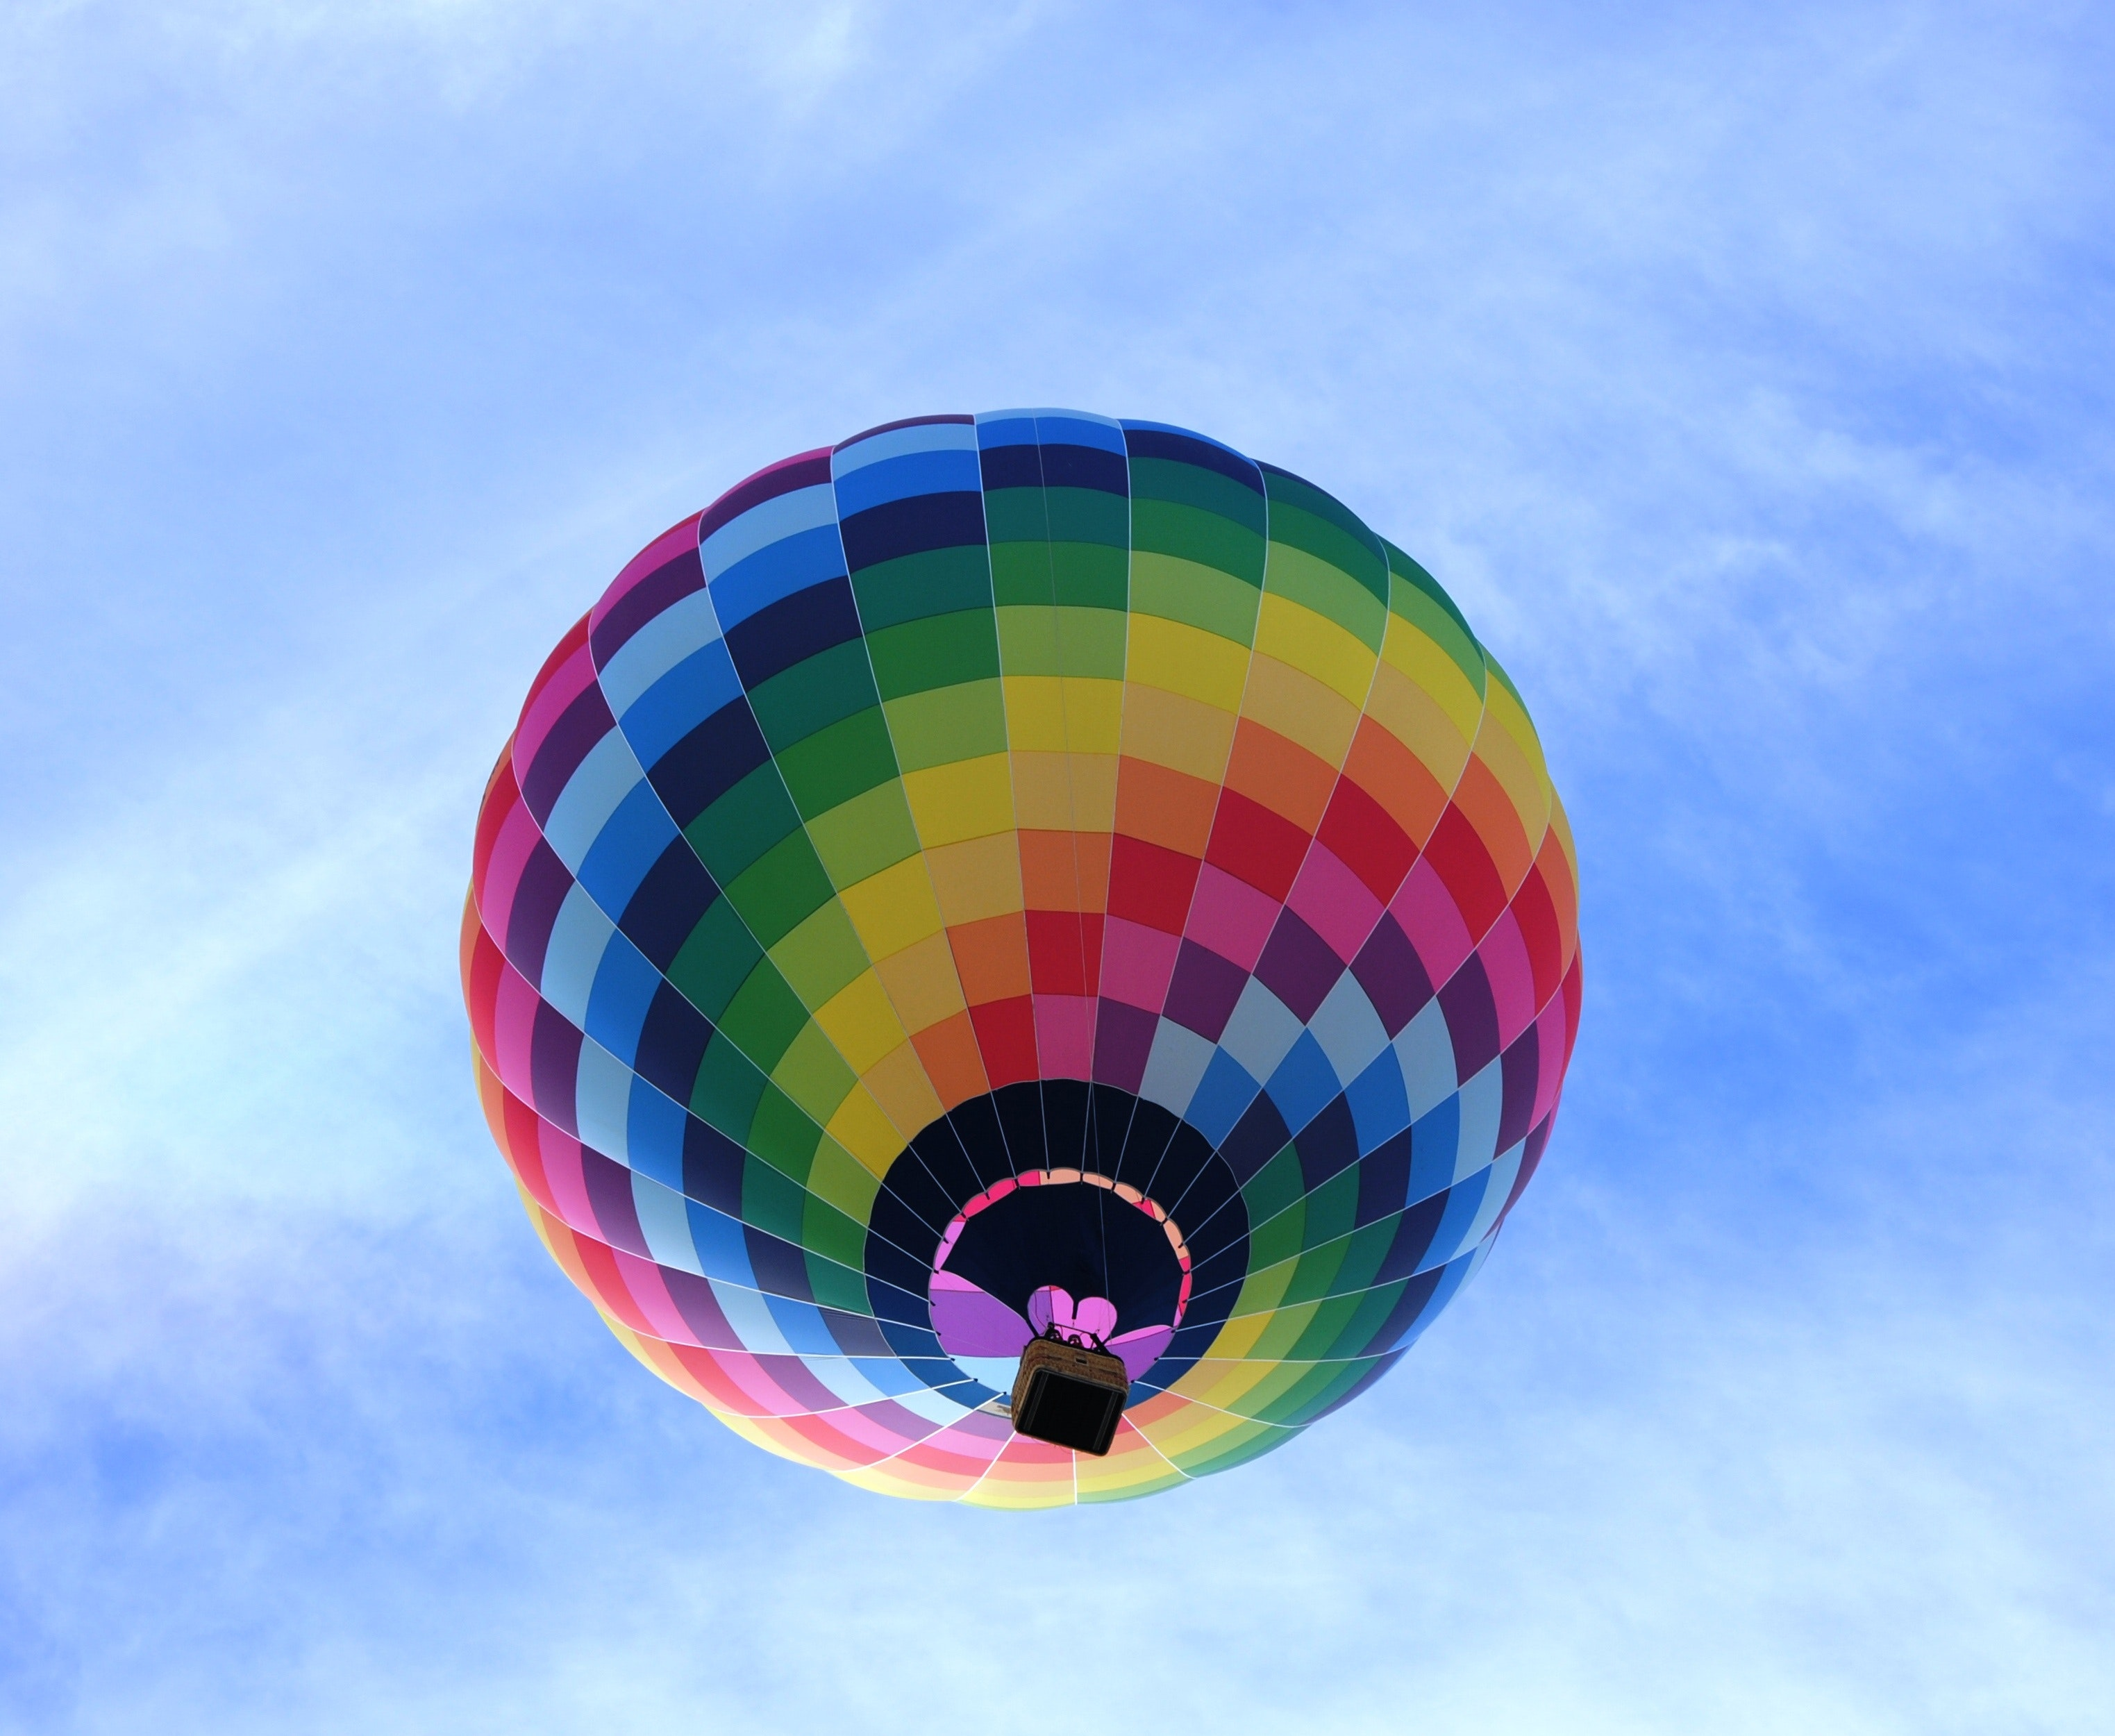 Hot air balloon flying under blue sky during daytime photo